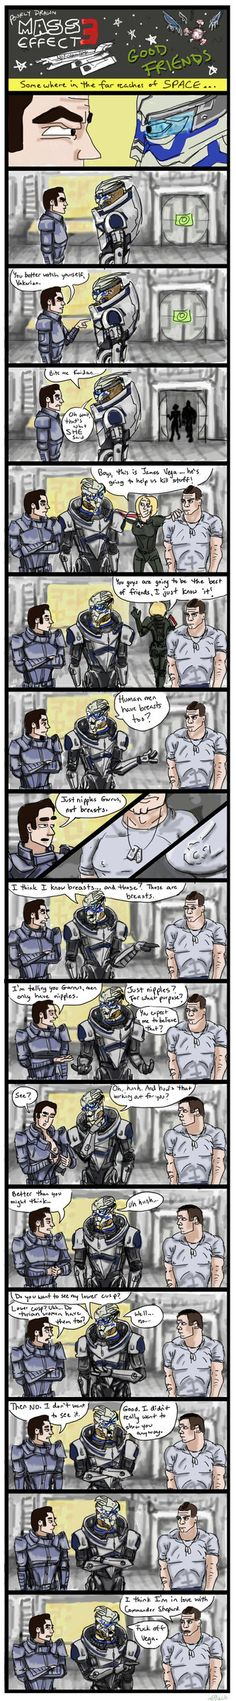 Yes, it has been a while since the last comic. And no, I have no idea what a turian 'cusp' is, it just sounded dirty, lol. Also I should say, I don't hate Vega, I really don't know anything about h...